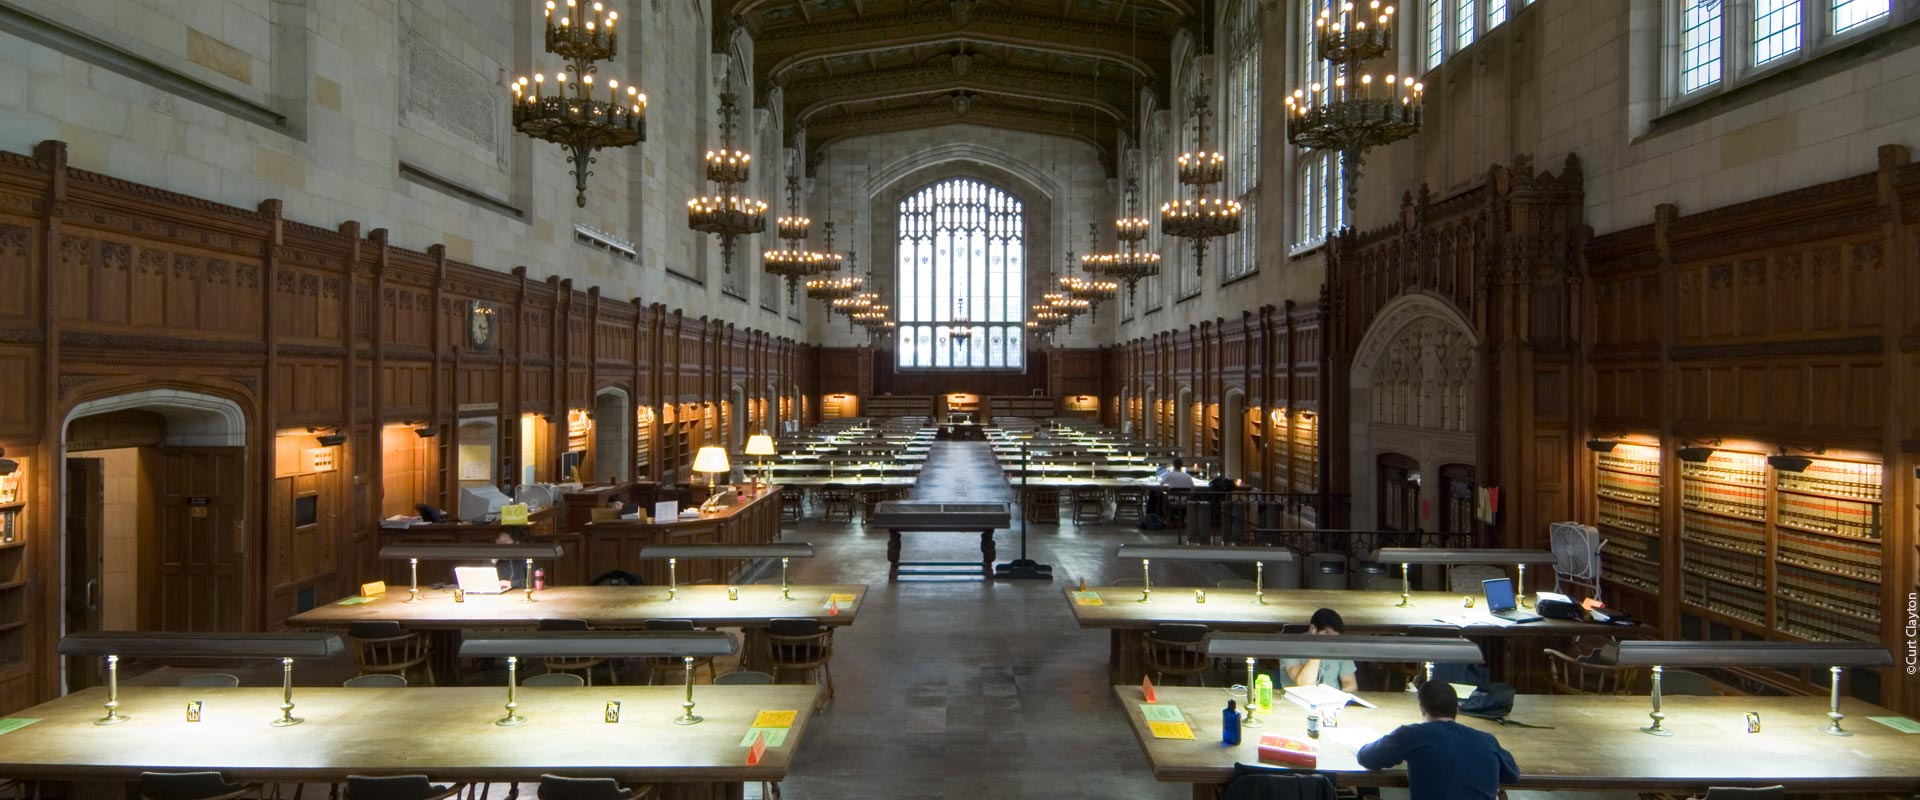 William W Cook Law Library Reading Room Crenshaw Lighting